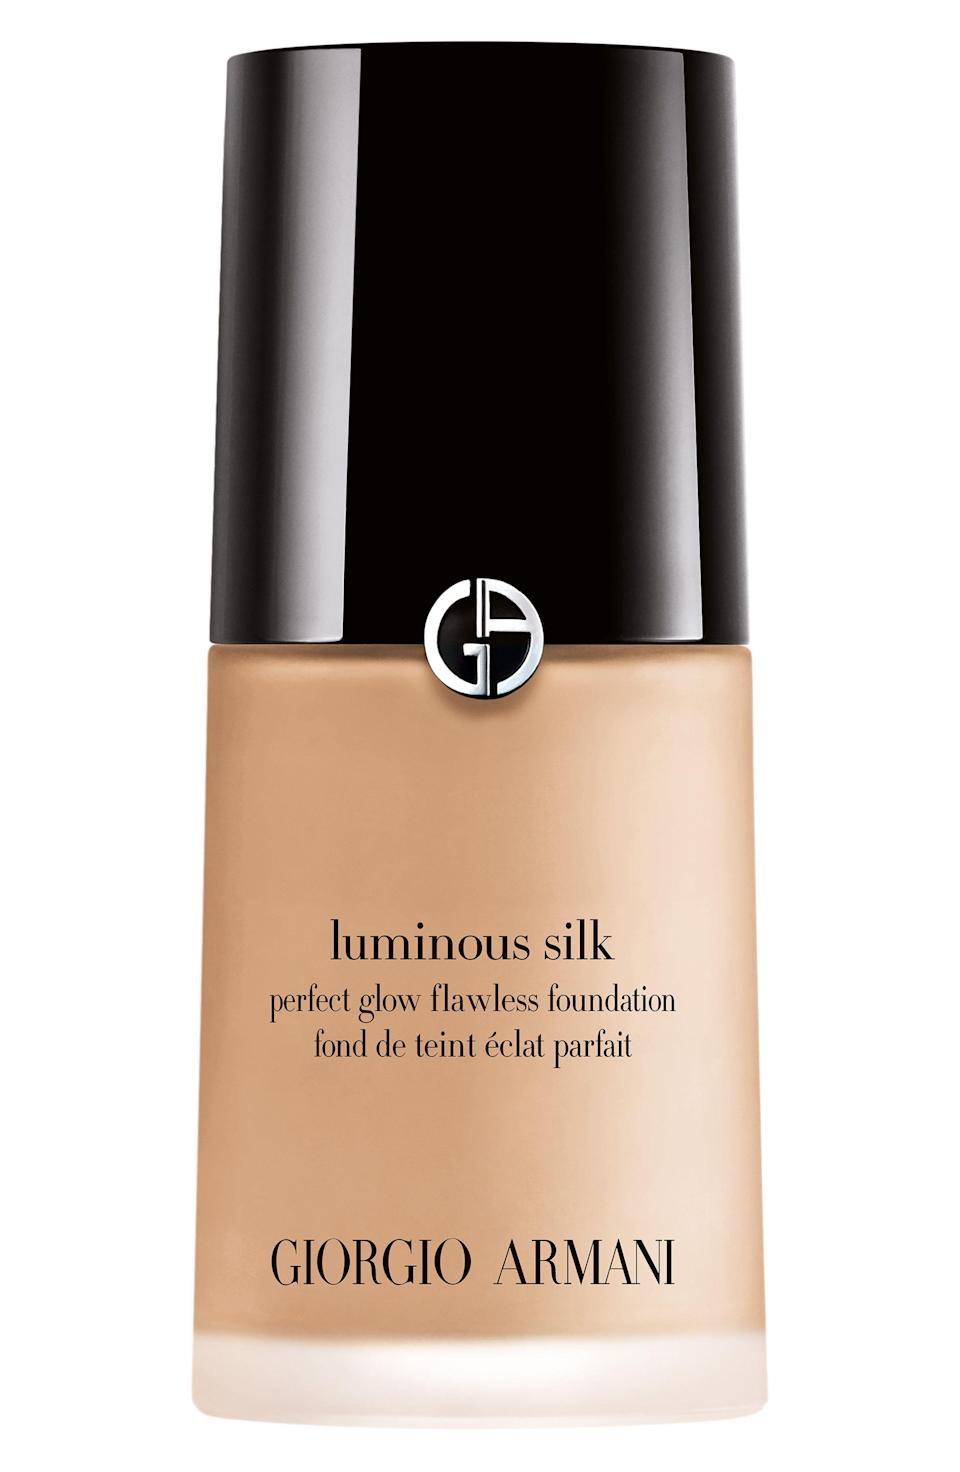 """<p><strong>GIORGIO ARMANI</strong></p><p>nordstrom.com</p><p><a href=""""https://go.redirectingat.com?id=74968X1596630&url=https%3A%2F%2Fwww.nordstrom.com%2Fs%2Fgiorgio-armani-luminous-silk-perfect-glow-flawless-oil-free-foundation%2F2853110&sref=https%3A%2F%2Fwww.townandcountrymag.com%2Fstyle%2Ffashion-trends%2Fg35967828%2Fnordstrom-spring-sale-2021%2F"""" rel=""""nofollow noopener"""" target=""""_blank"""" data-ylk=""""slk:Shop Now"""" class=""""link rapid-noclick-resp"""">Shop Now</a></p><p>$54.40</p><p><em>Original Price: $64</em></p>"""